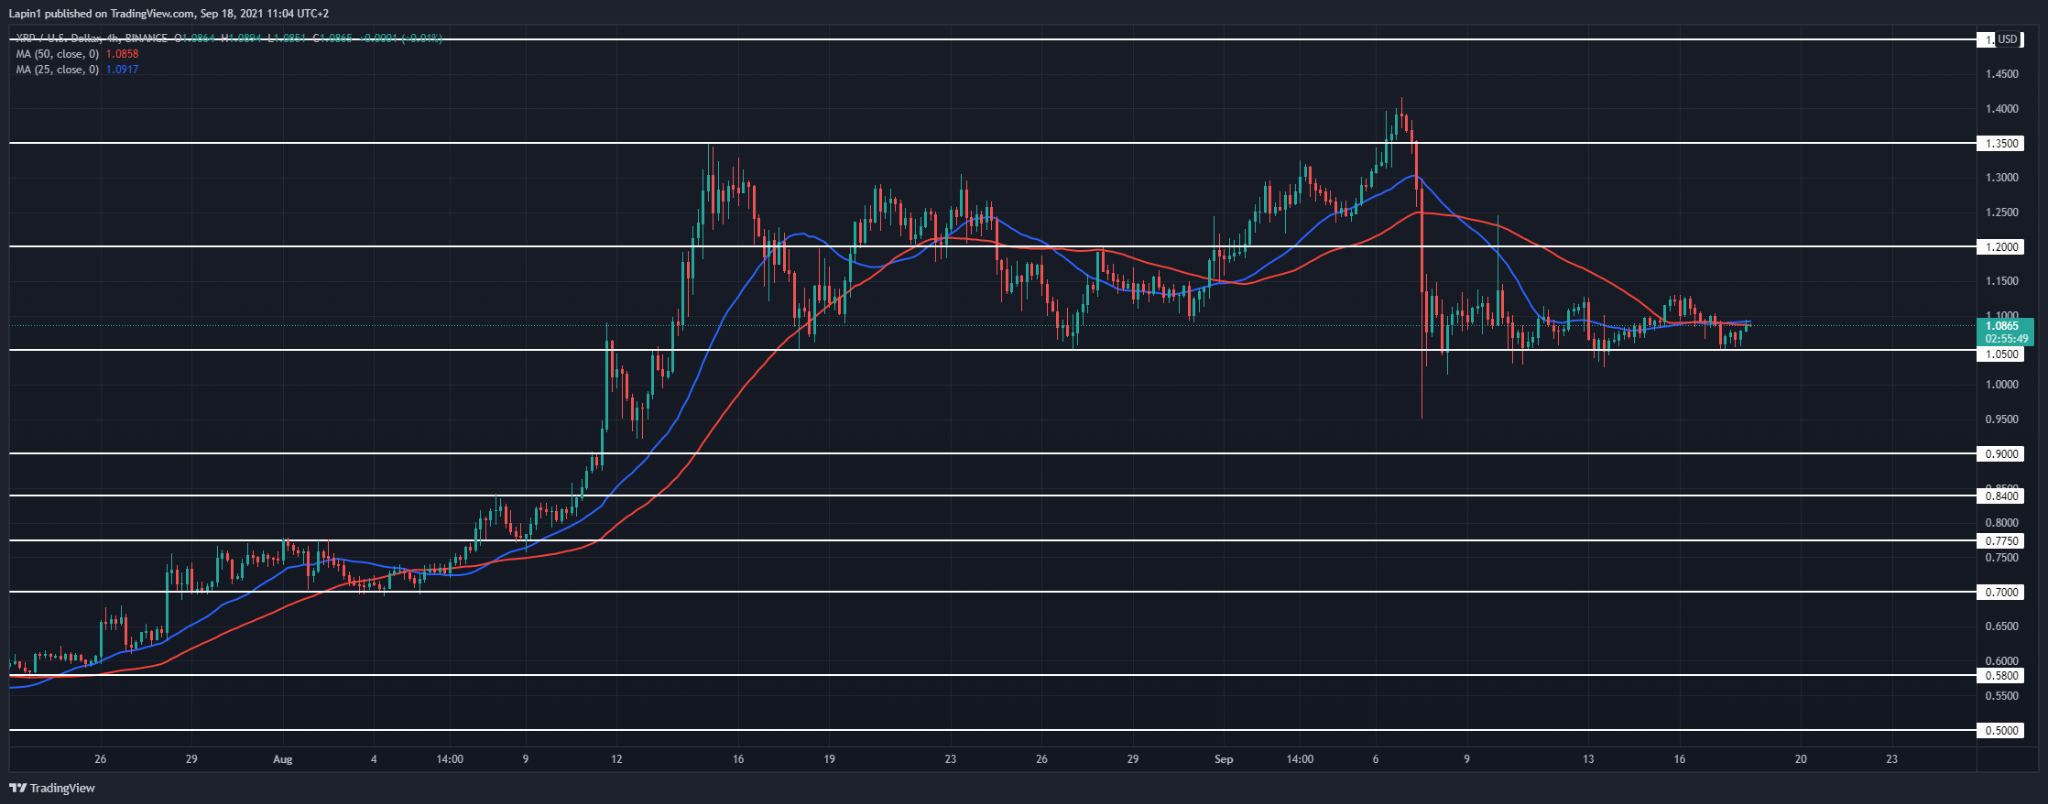 Ripple Price Analysis: XRP retests $1.05 once more, will we see a reversal today?